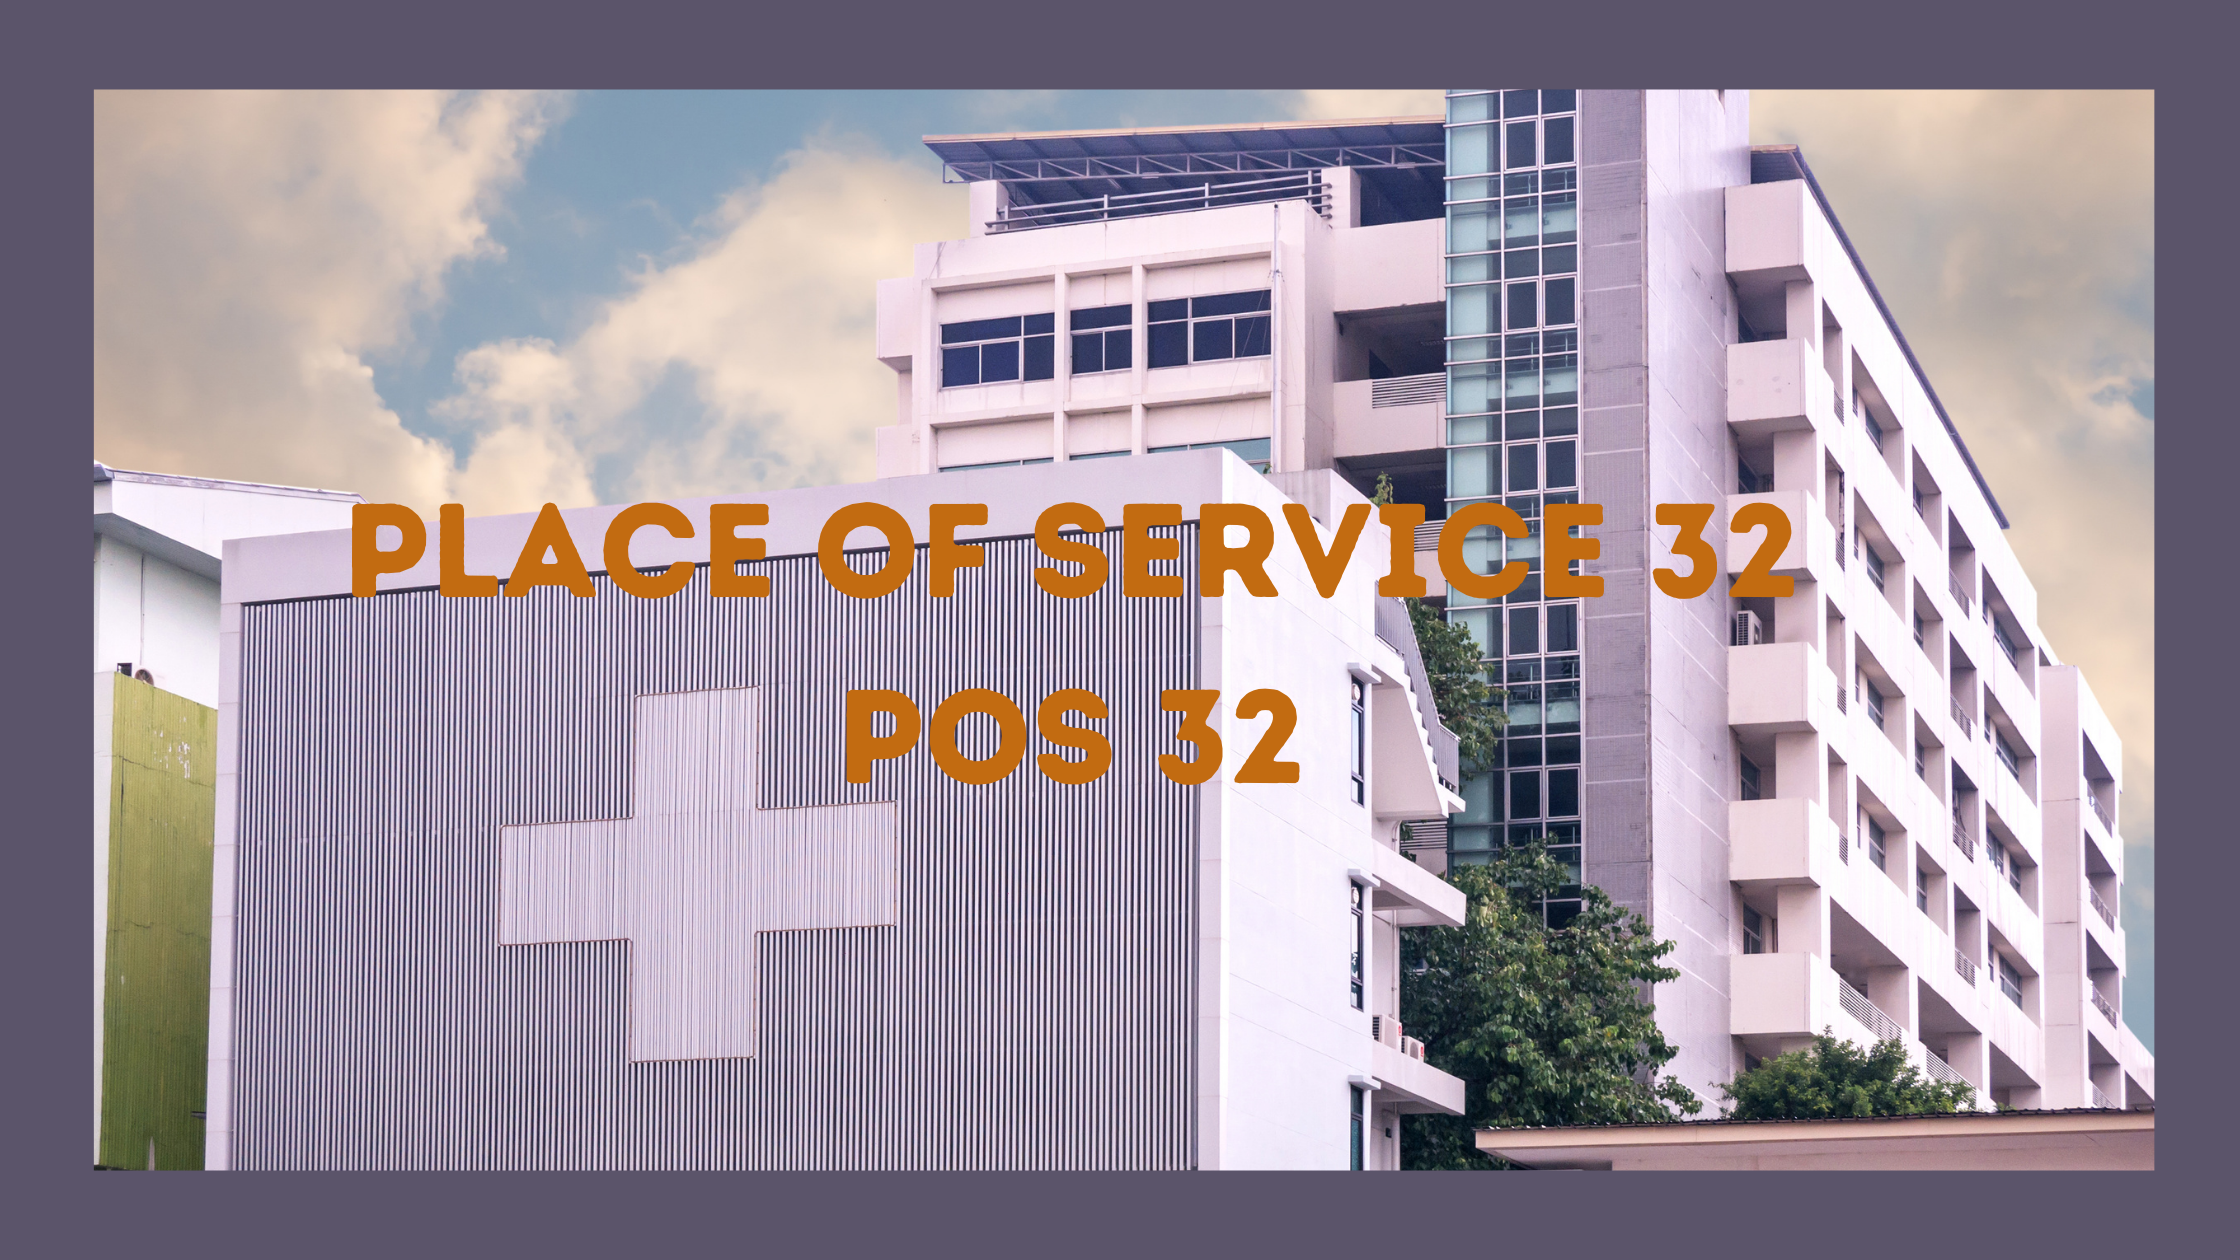 place of service 32 in medical billing